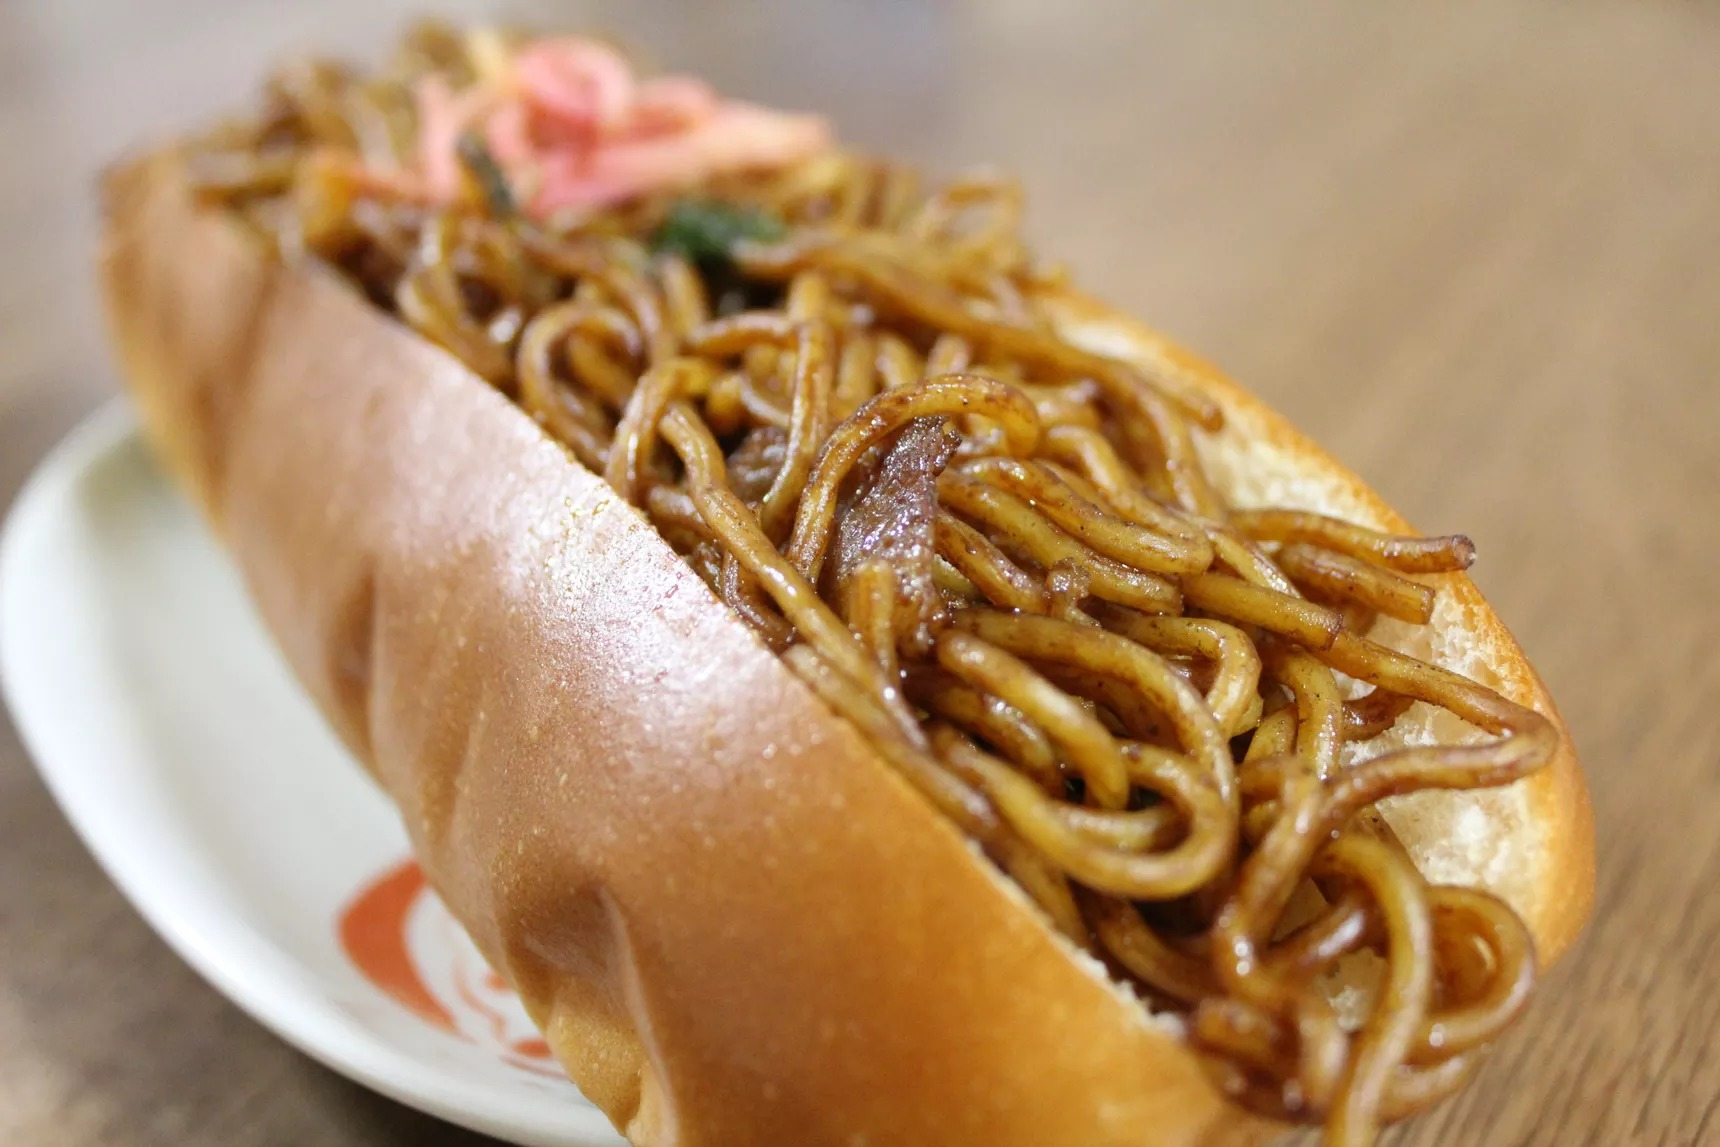 A hot dog bun stuffed with yellow fried wheat noodles and topped with a little bit of pink pickled ginger and green seaweed powder.